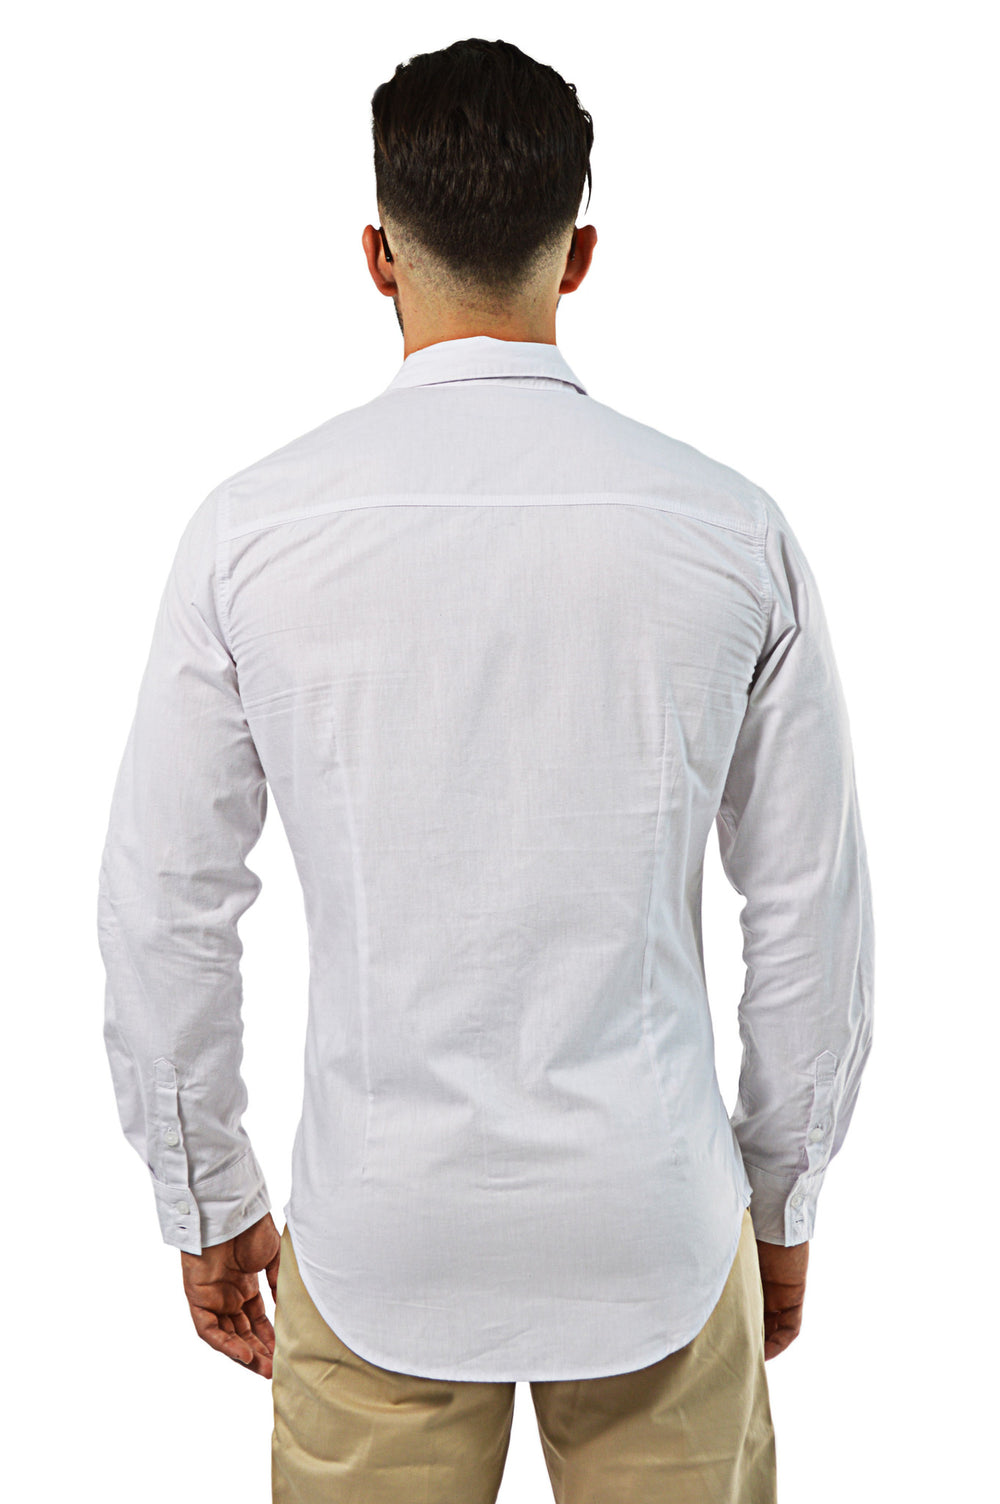 back view tailored white shirt